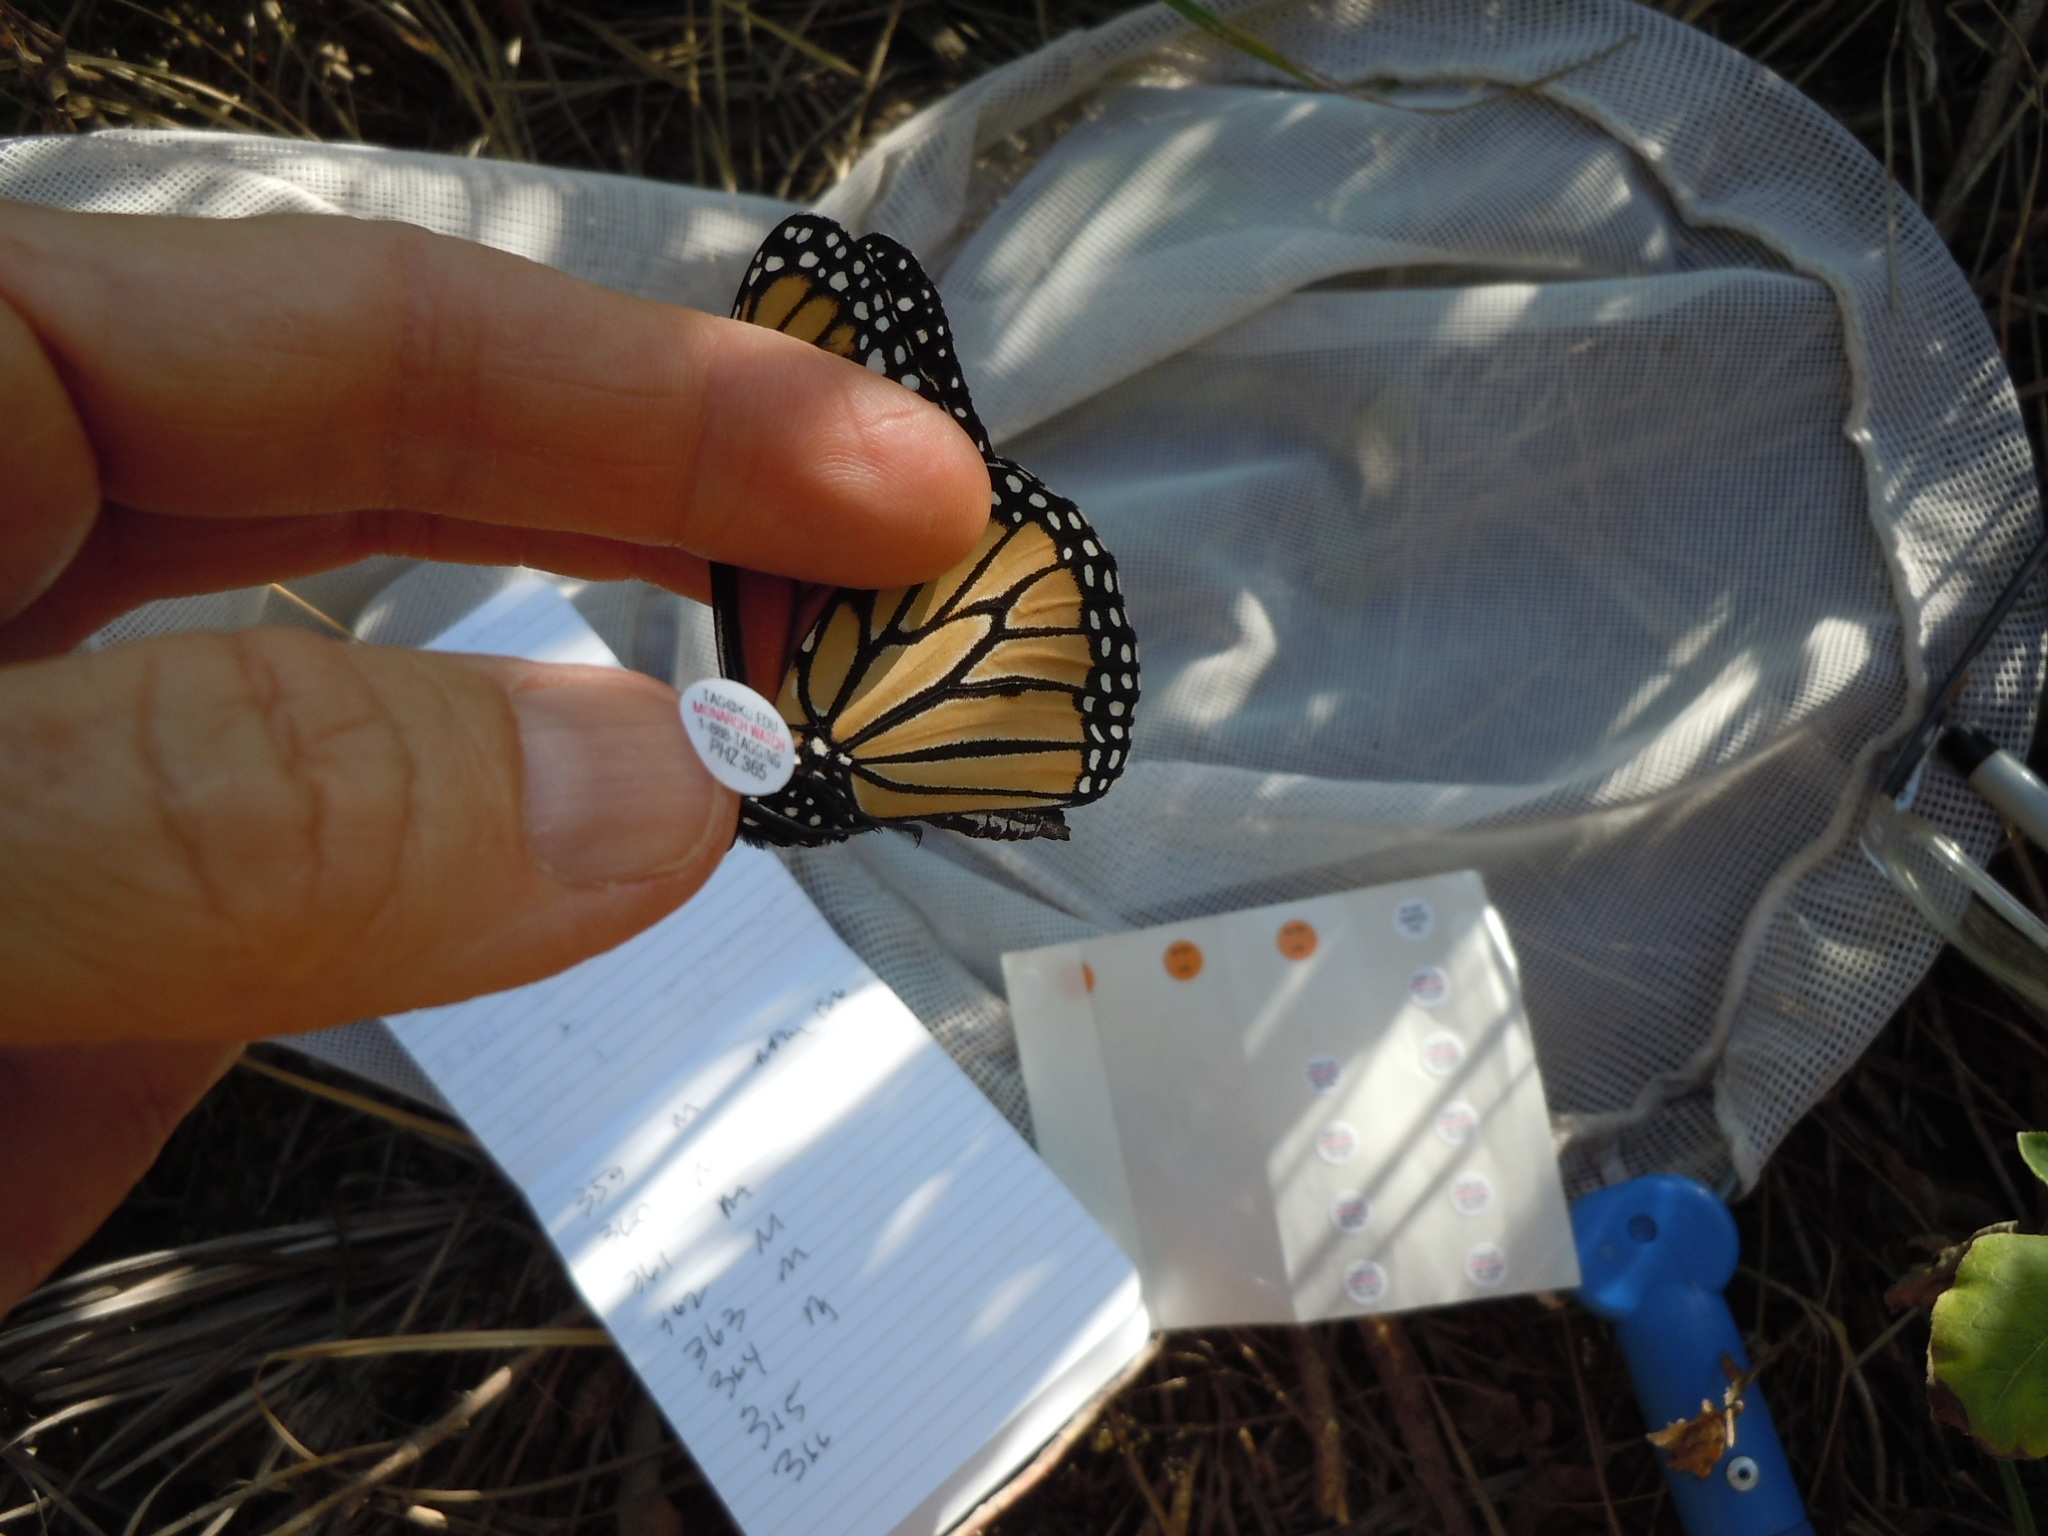 Use your thumbnail to lift tag from sheet and transfer to butterfly.